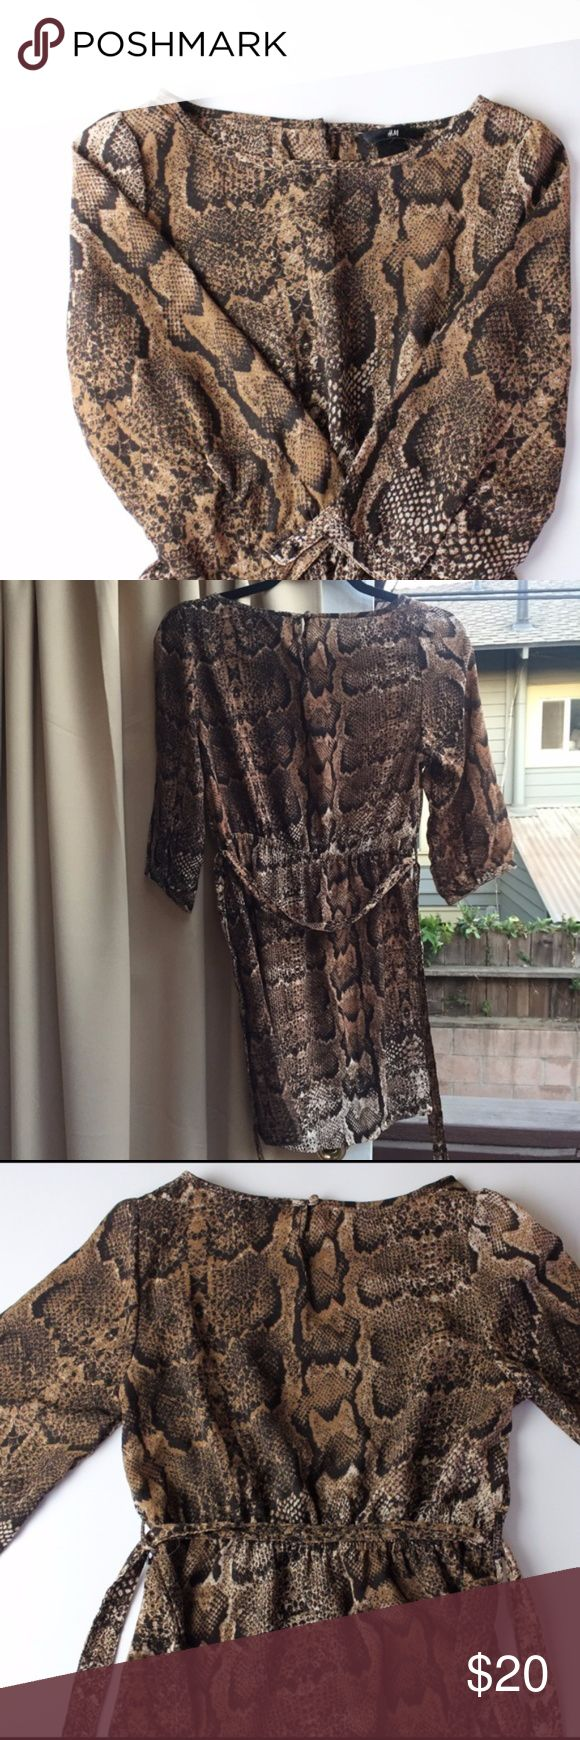 5/$25 SALE! H&M Snake Print Belted Dress Cute brown snake print dress with belt. No damage! Keyhole back. H&M Dresses